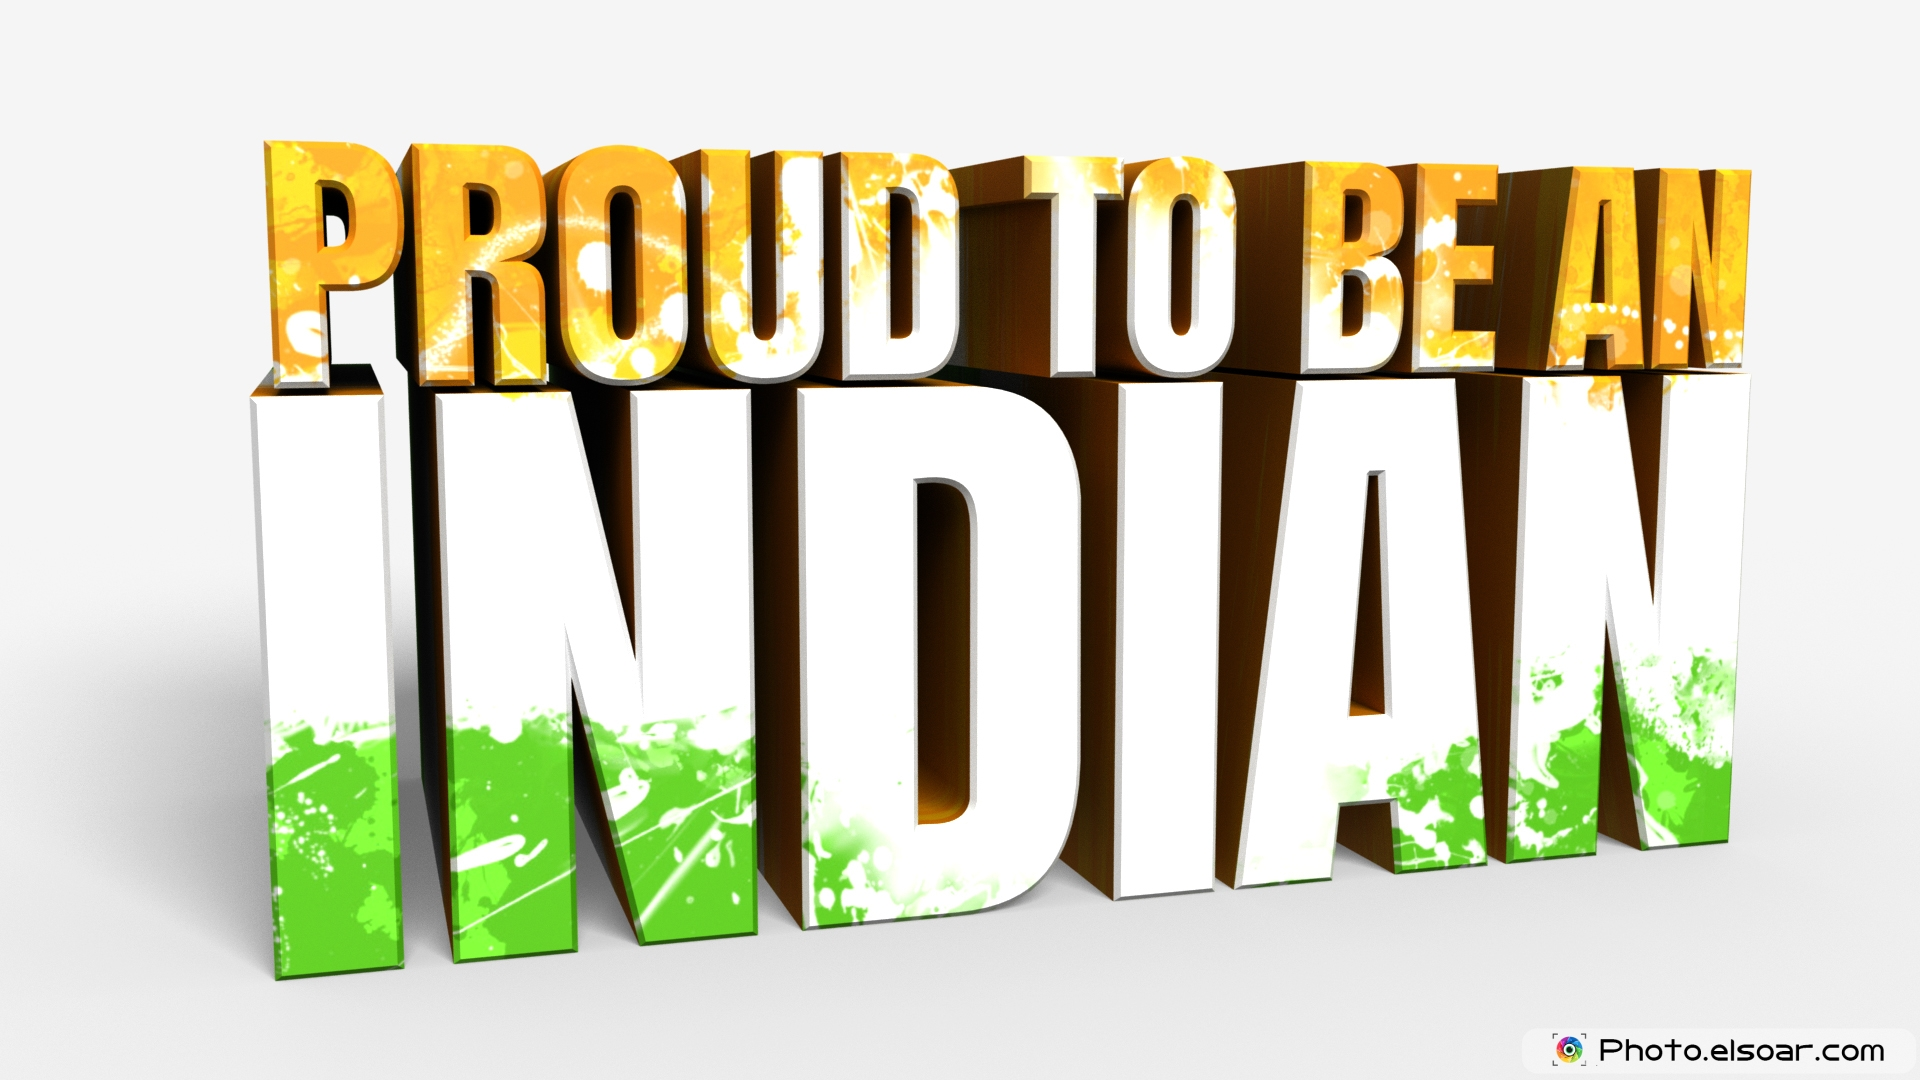 """Am I proud to be an Indian?"", Ask this question to yourself."